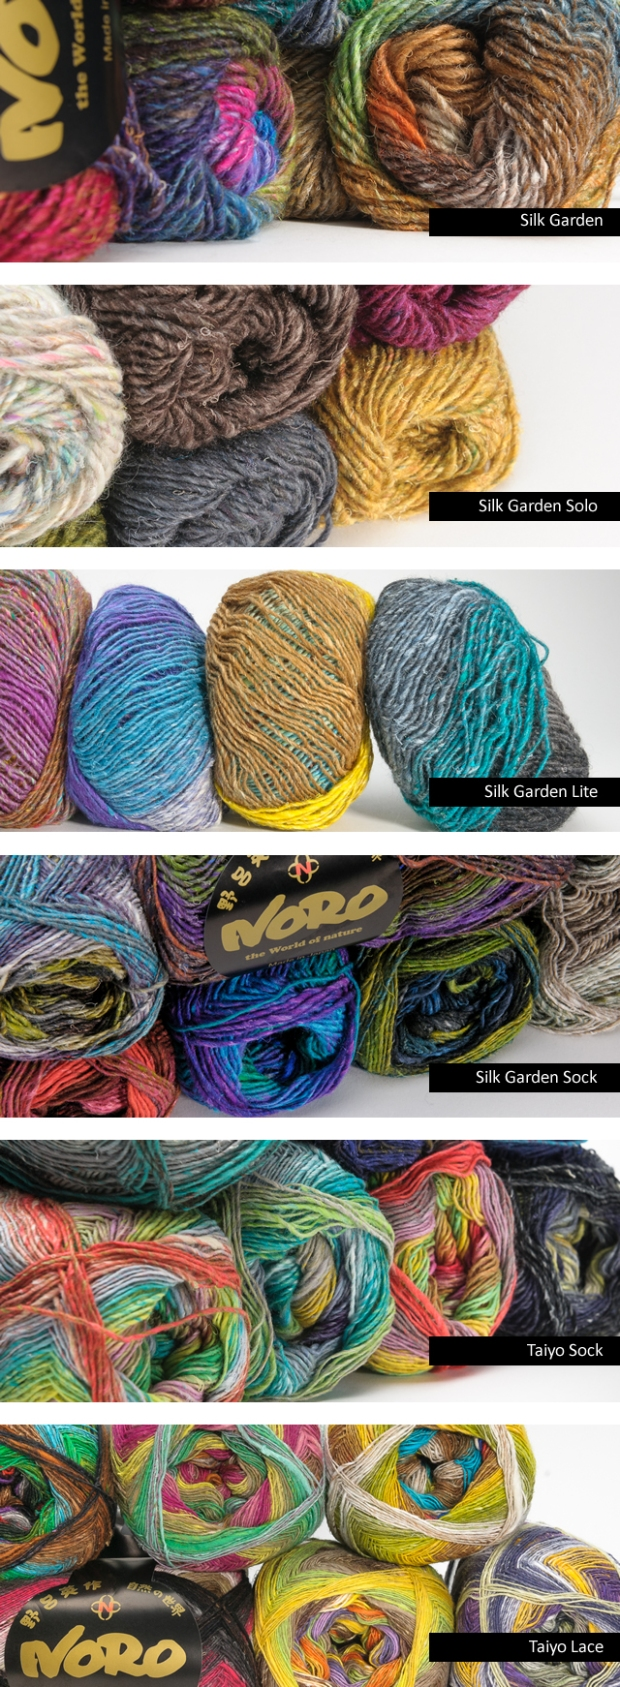 noro_headers